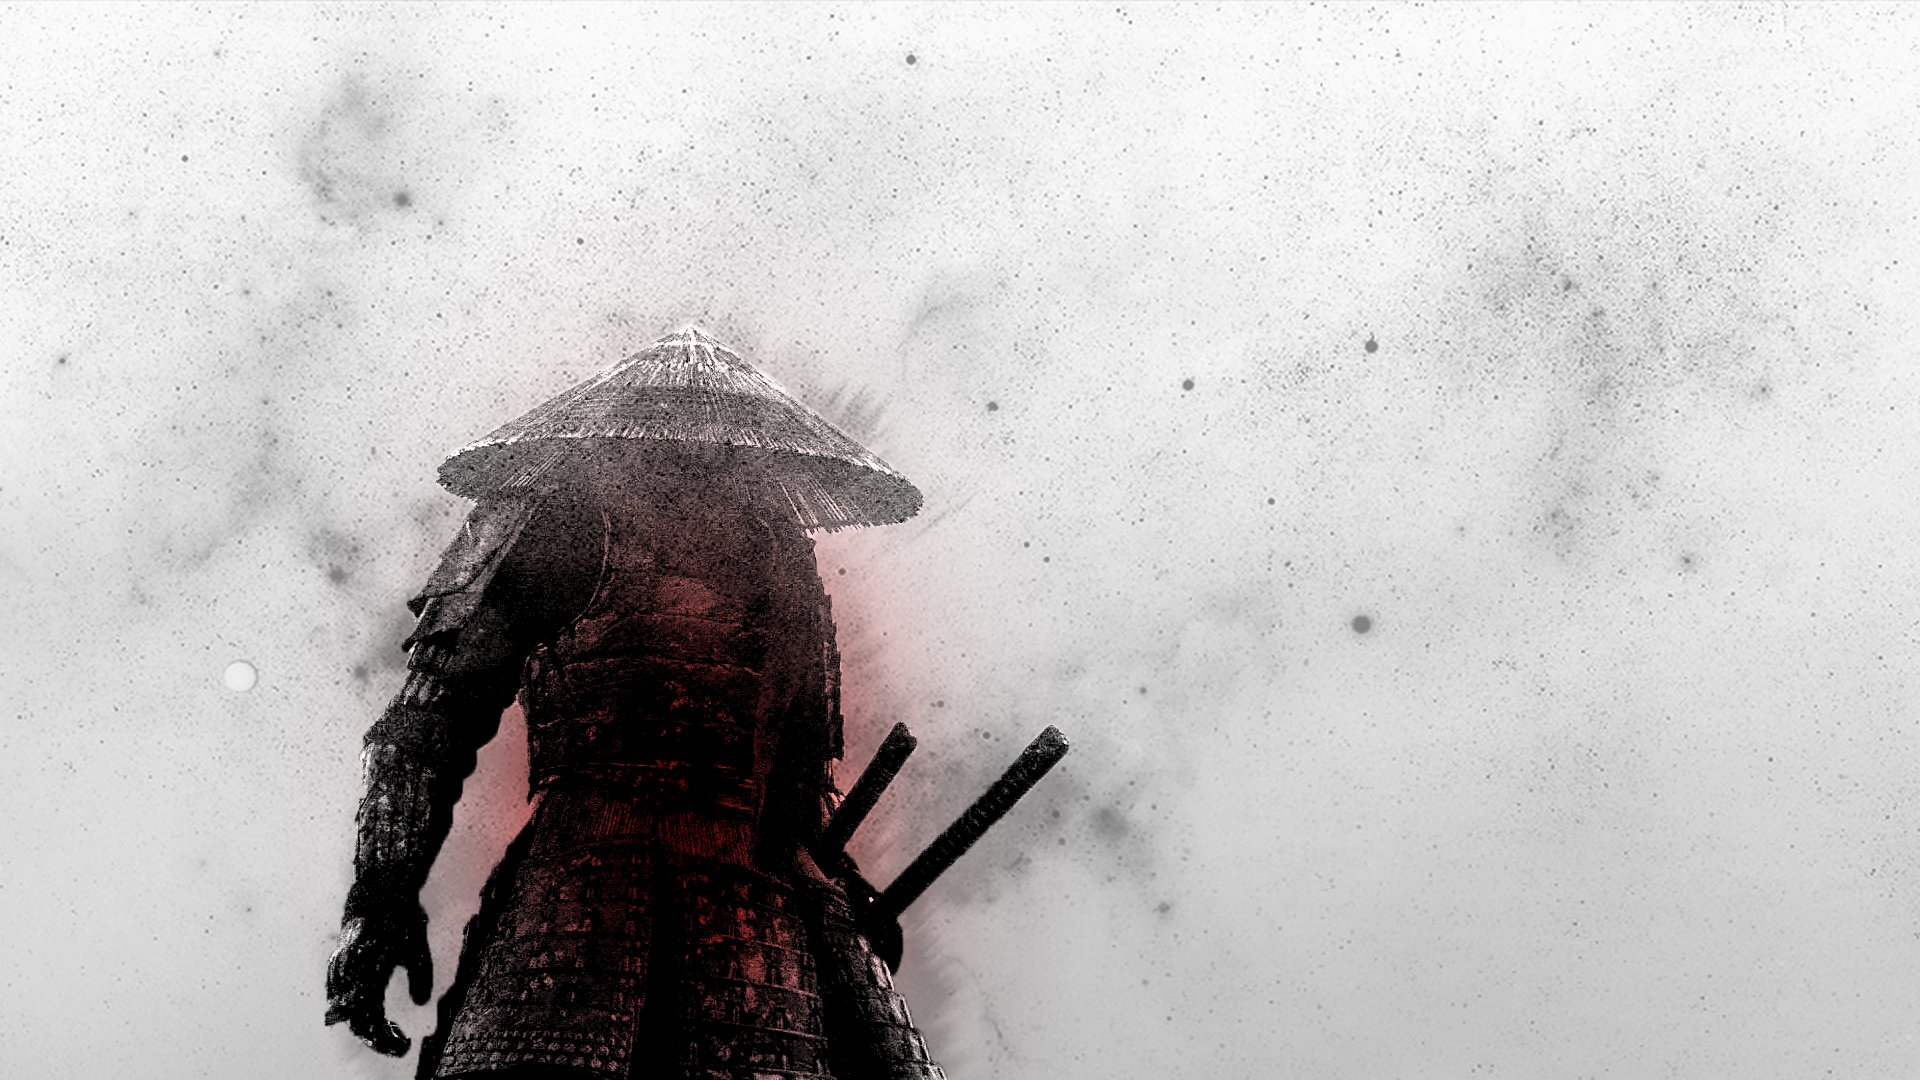 New Star Wars Samurai Wallpapers Star Wars Samurai Wallpaper 1920x1080